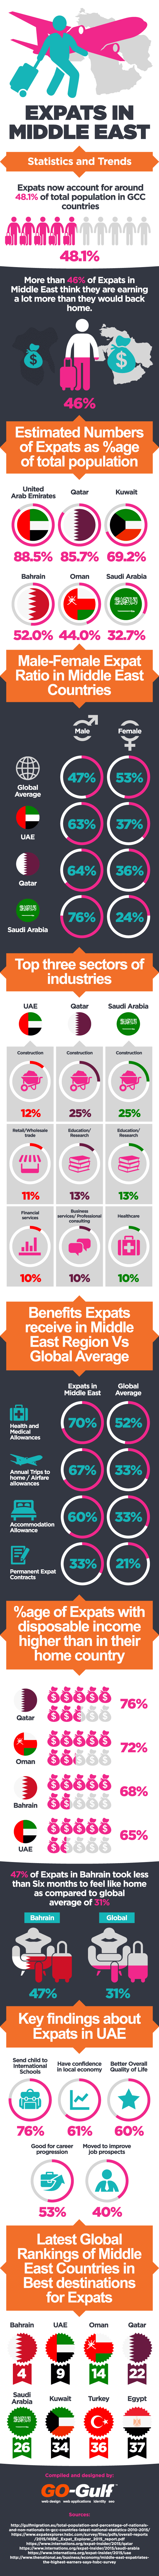 Expats in Middle East - Statistics and Trends [Infographic]